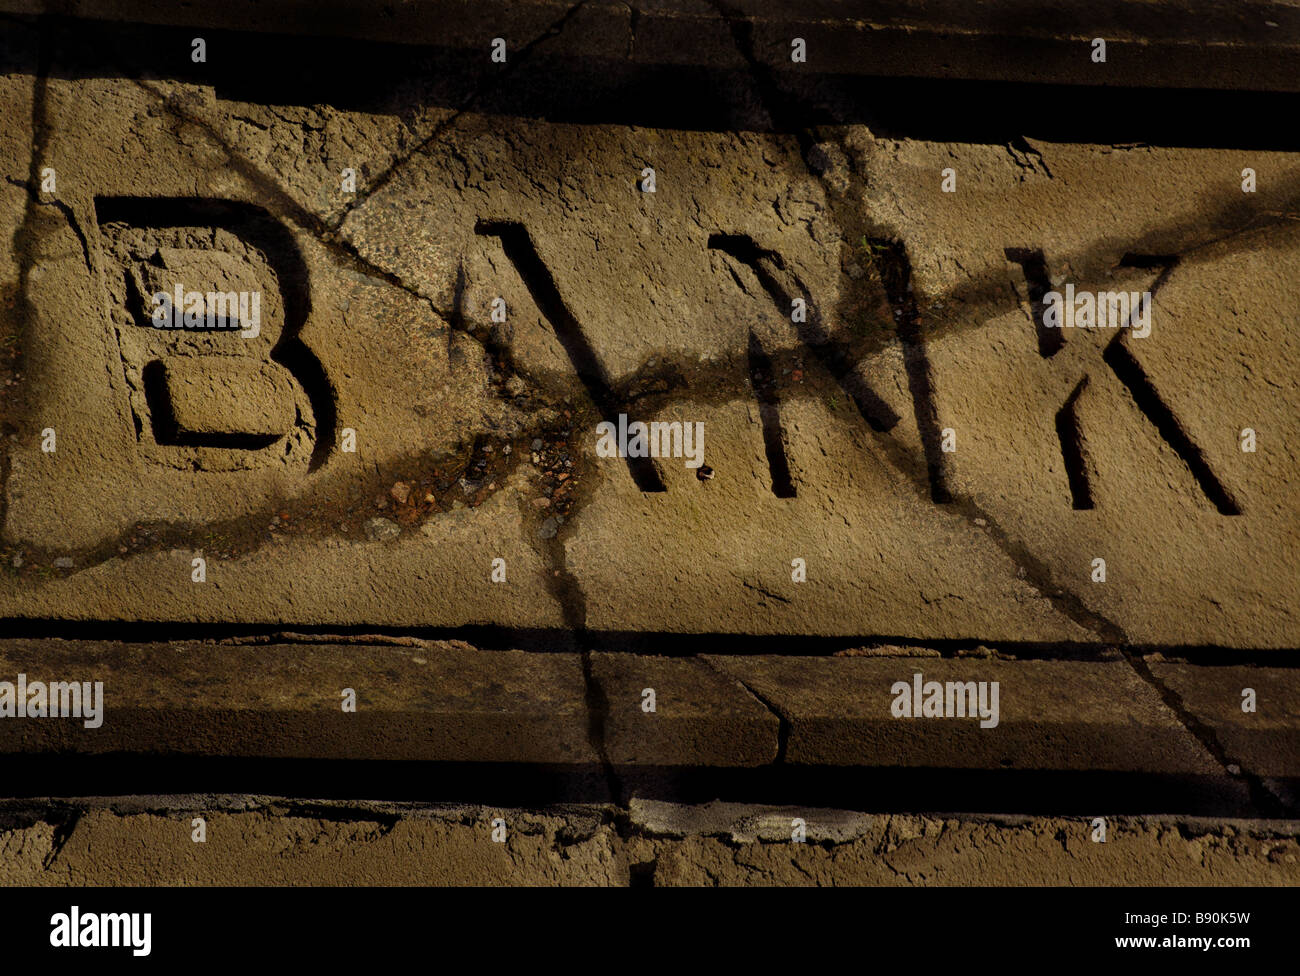 Generic Stone Bank Sign Showing Cracks and Decay due to age (Concept). Irish banking crisis - Stock Image